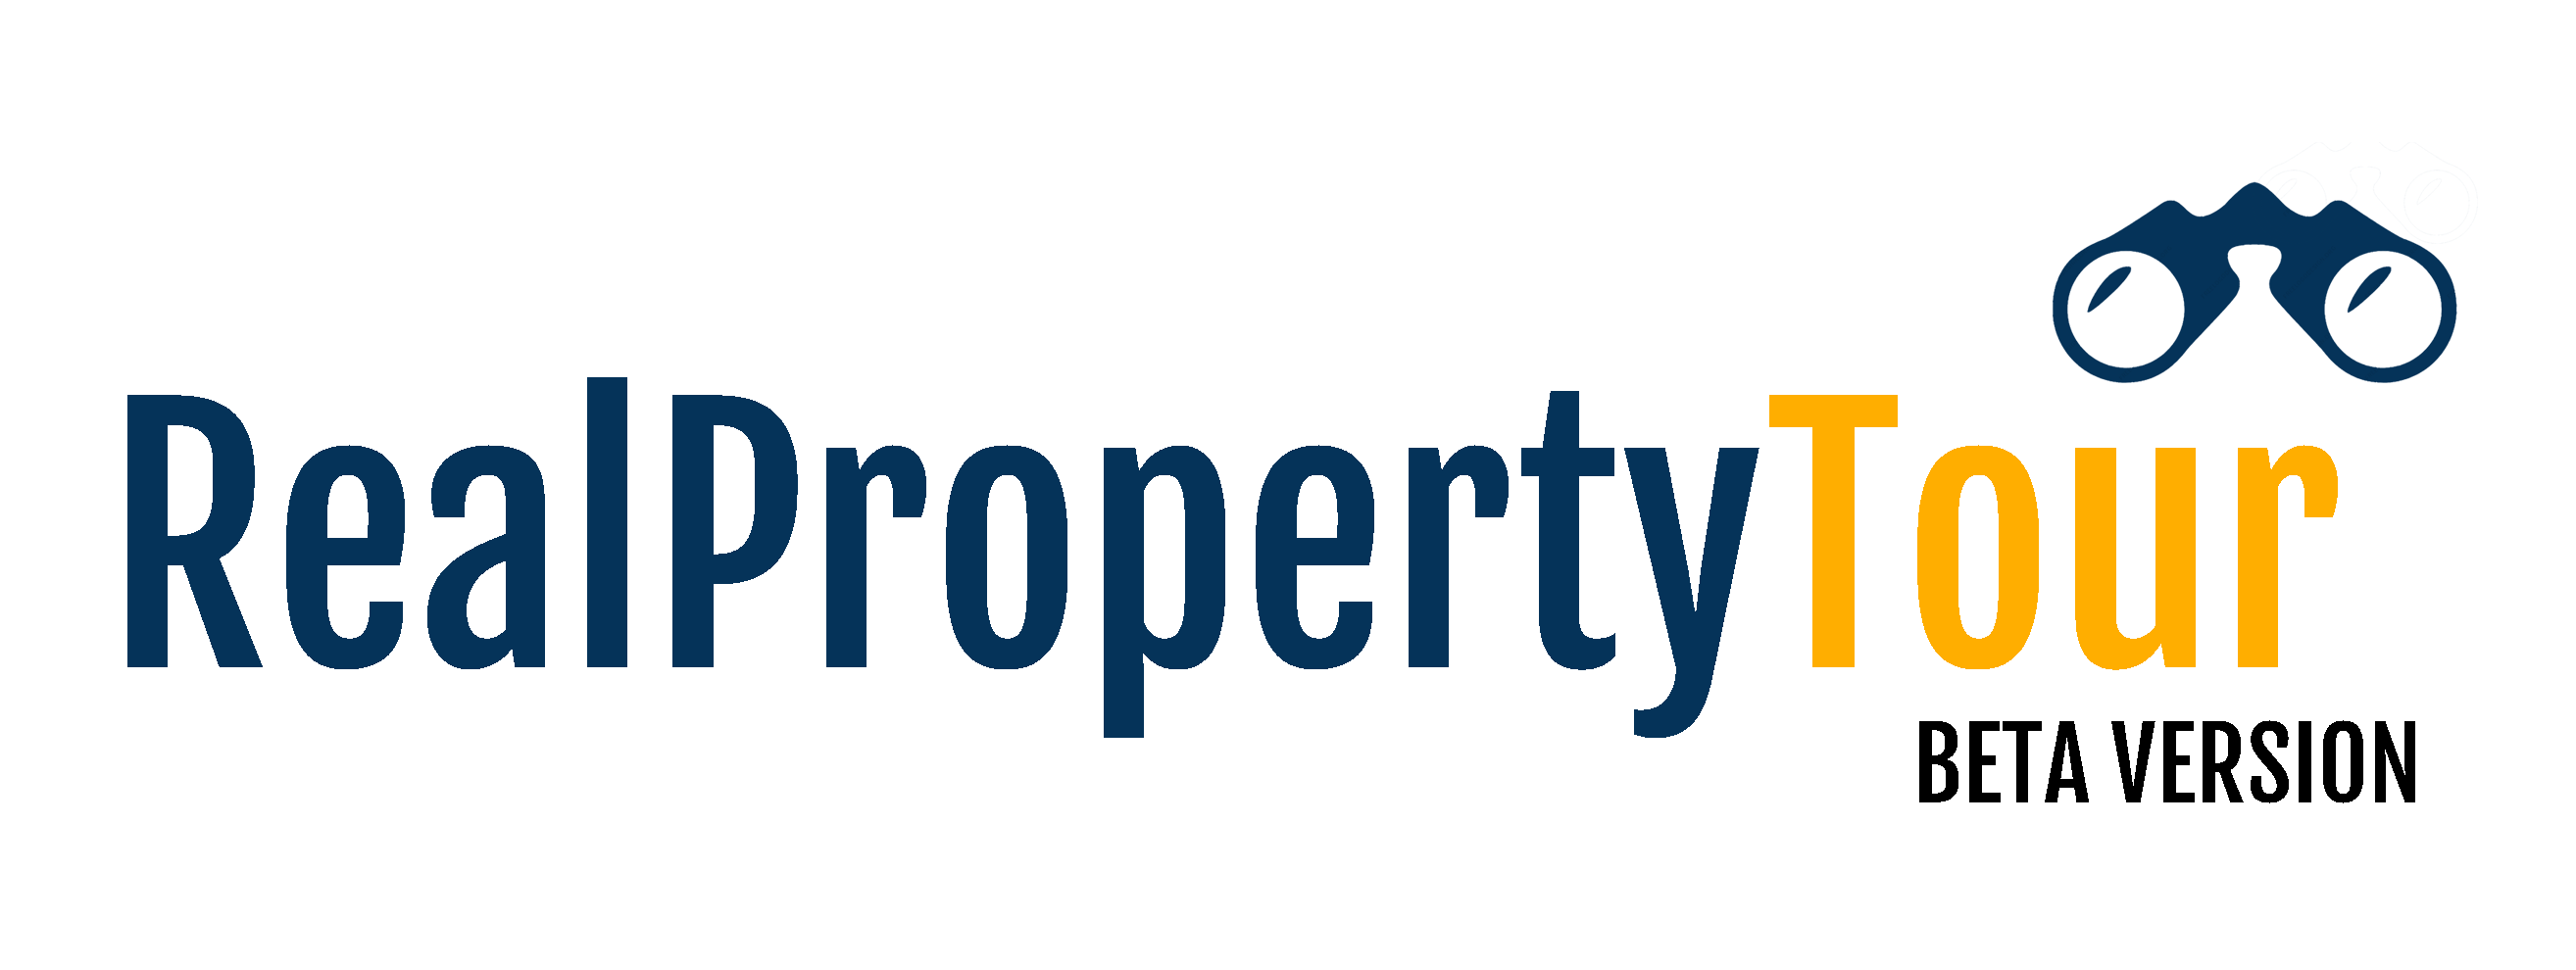 RealPropertyTour